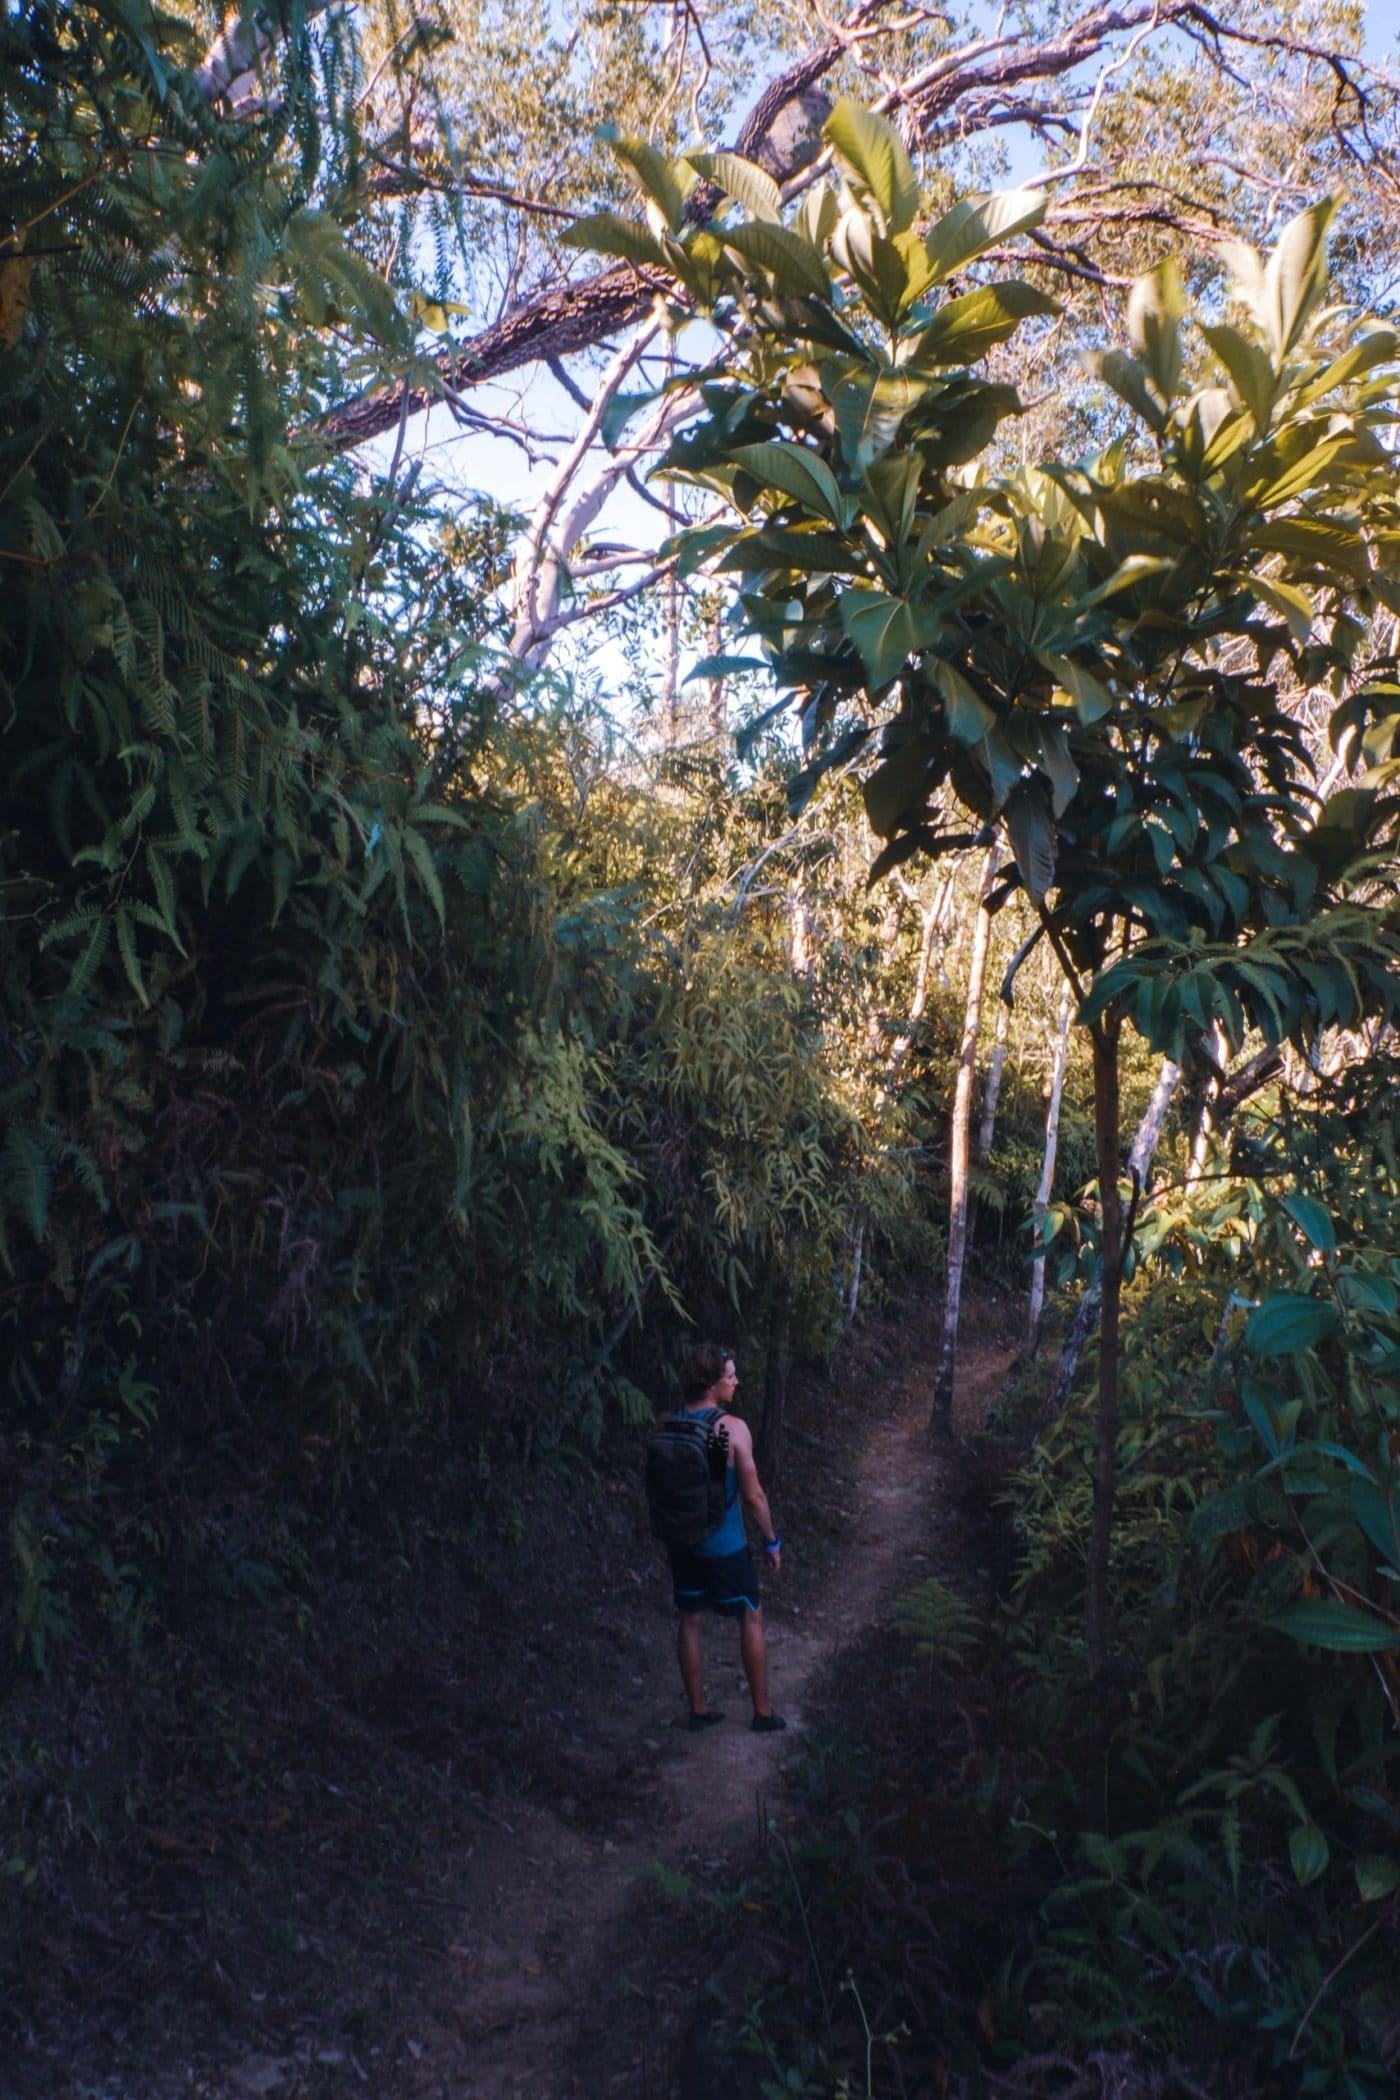 The hike to Tiger Fern Falls is strenuous and follows a well maintained hiking trail through the jungle